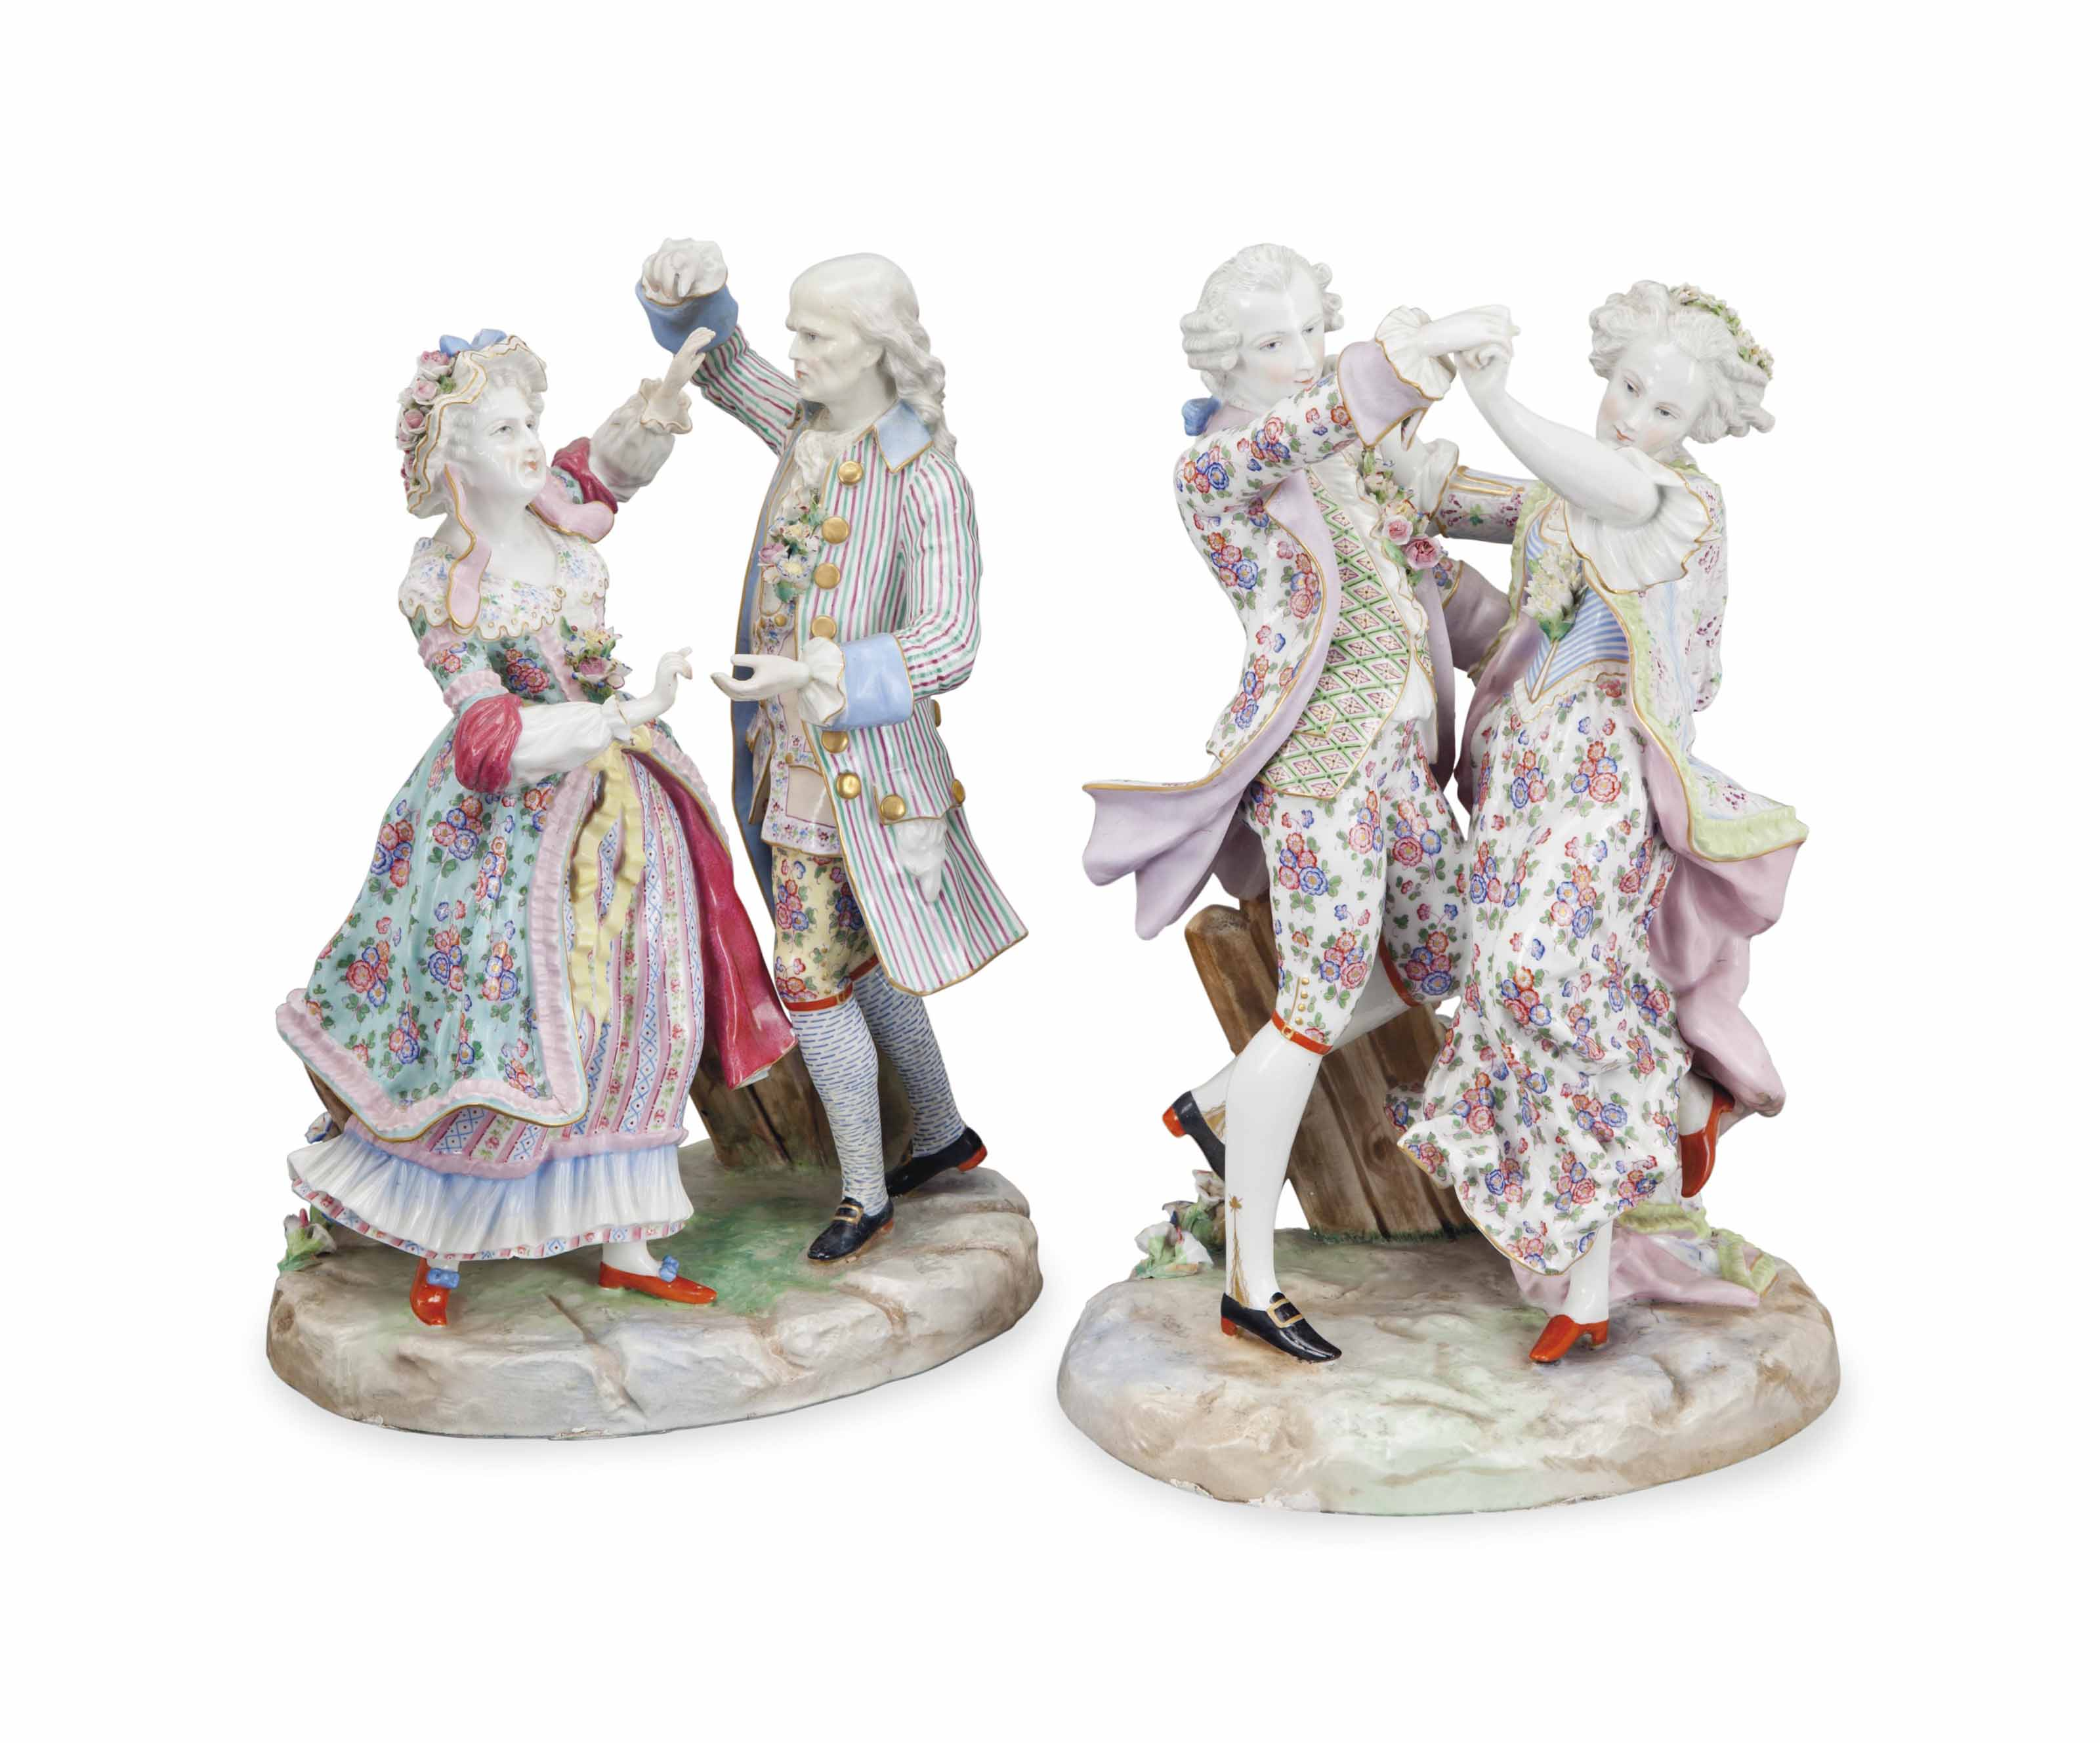 PAIR OF MEISSEN-STYLE PORCELAI